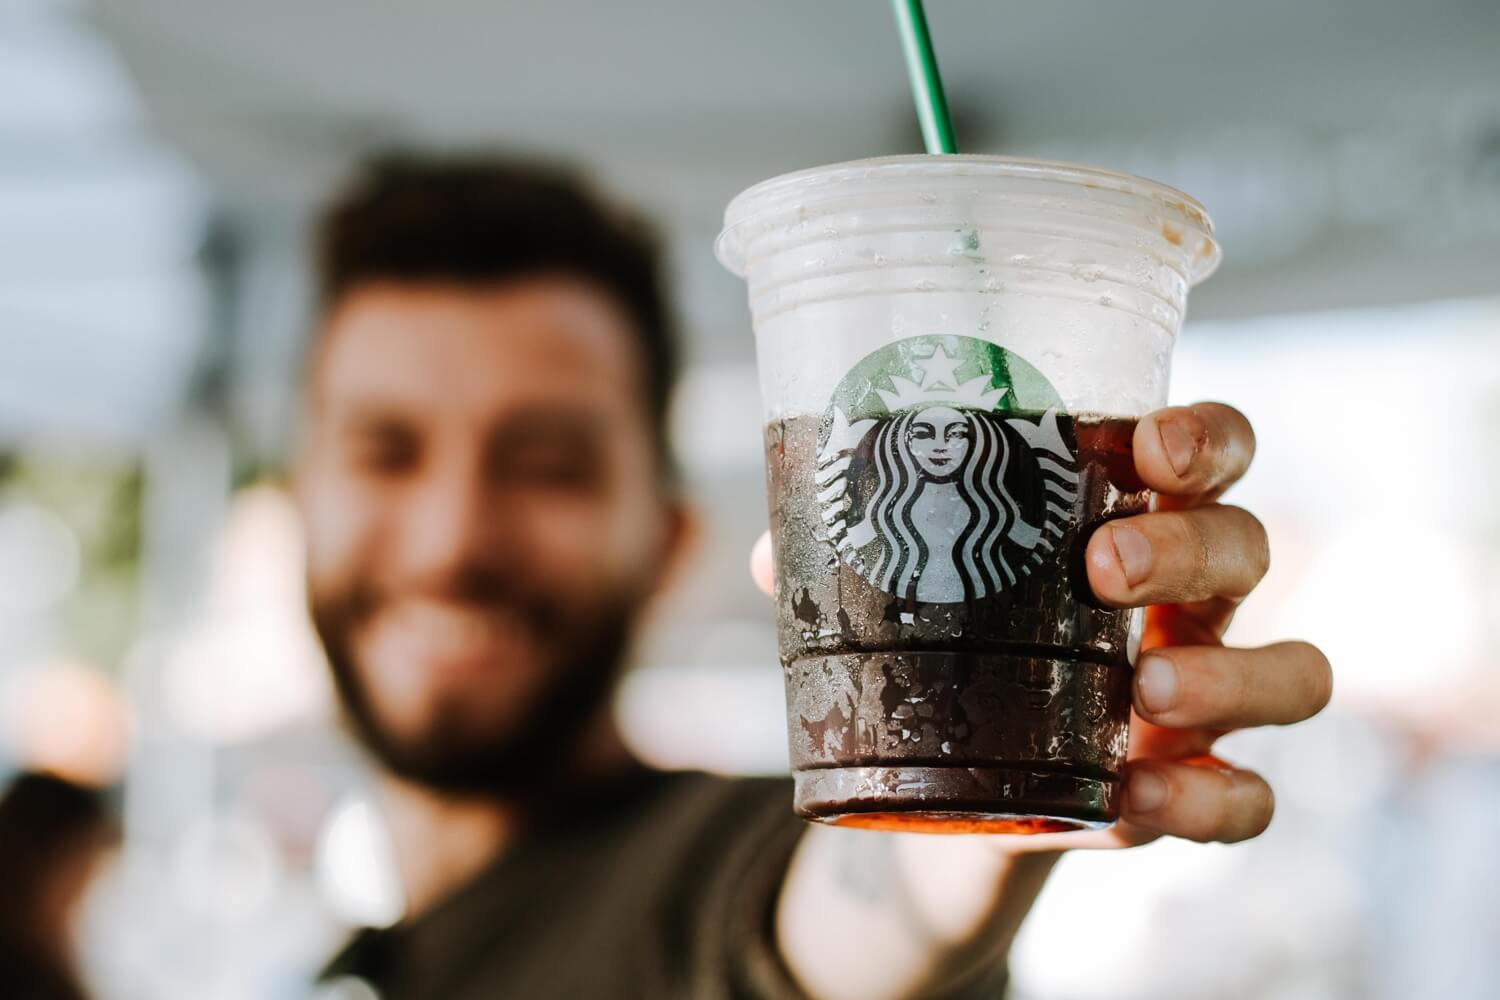 A man holding up a plastic cup of free Starbucks coffee.